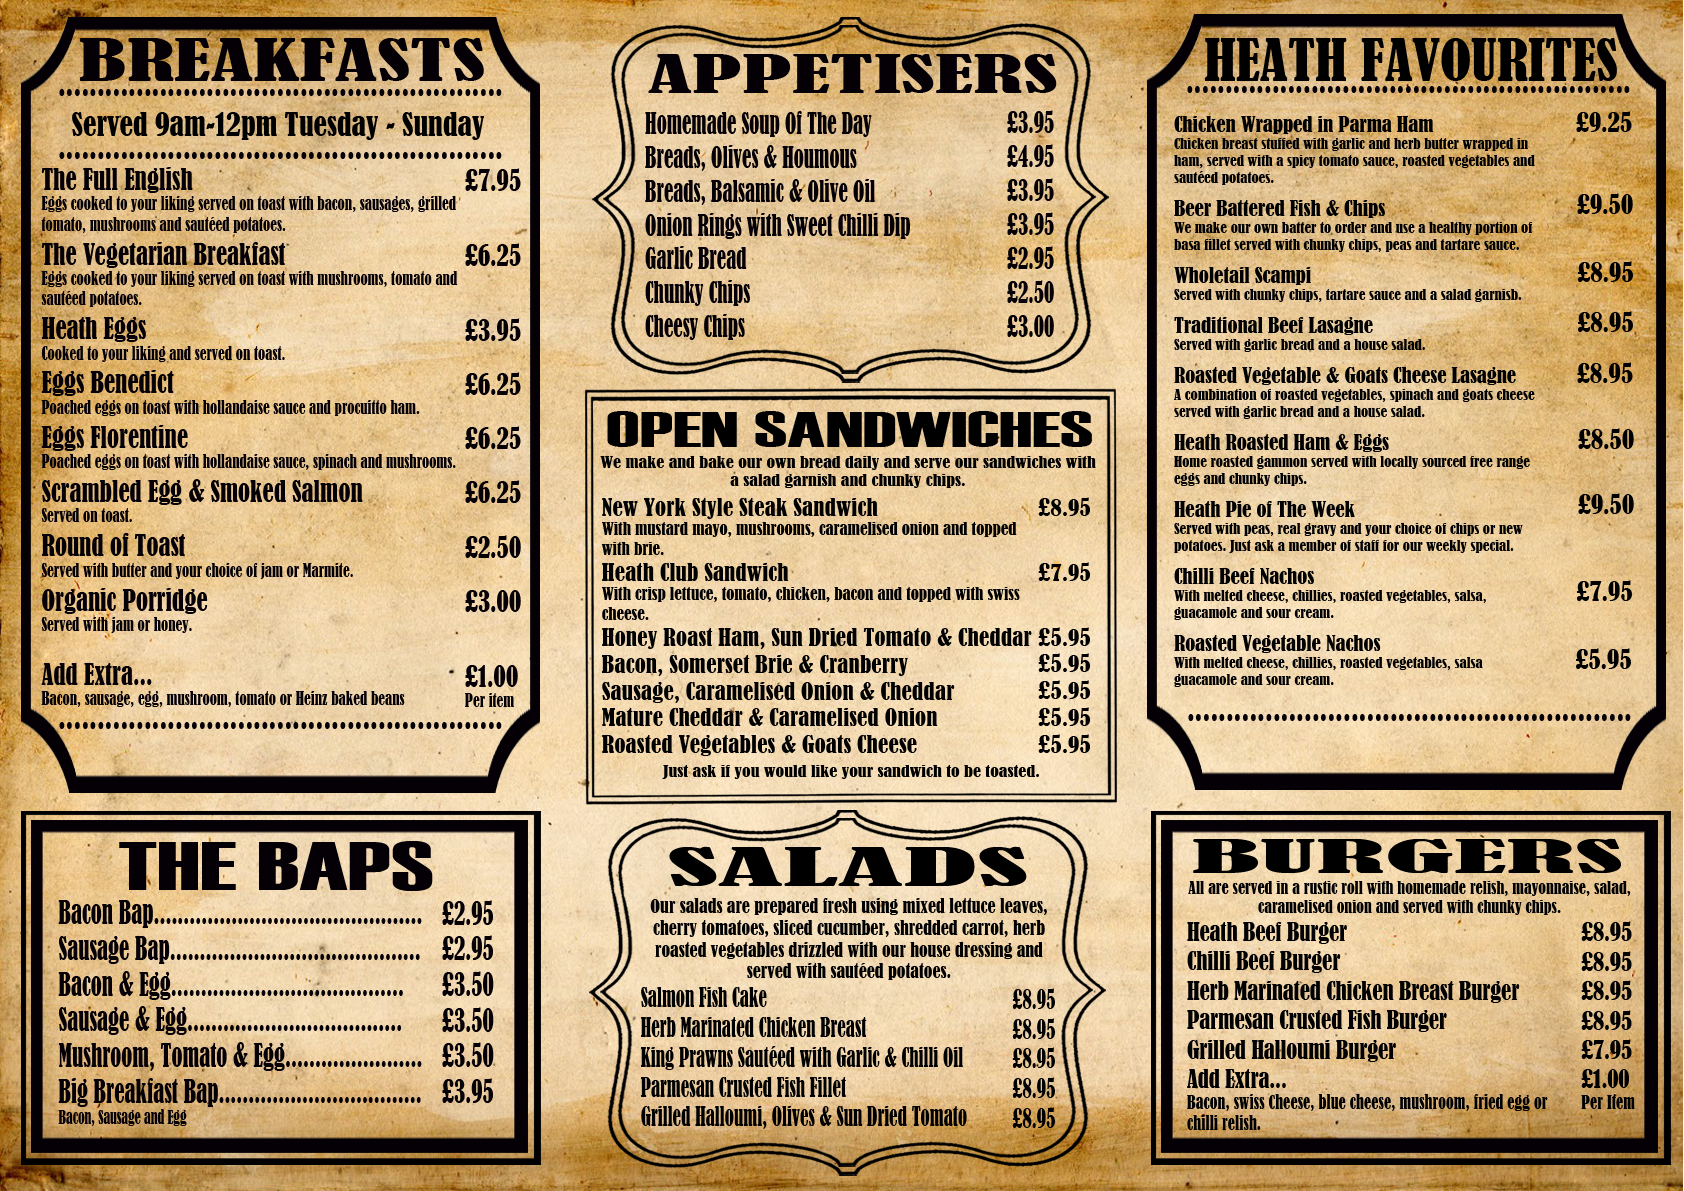 Cafe Menu Design Ideas | Cafe menu design, Cafe menu and Restaurant ...